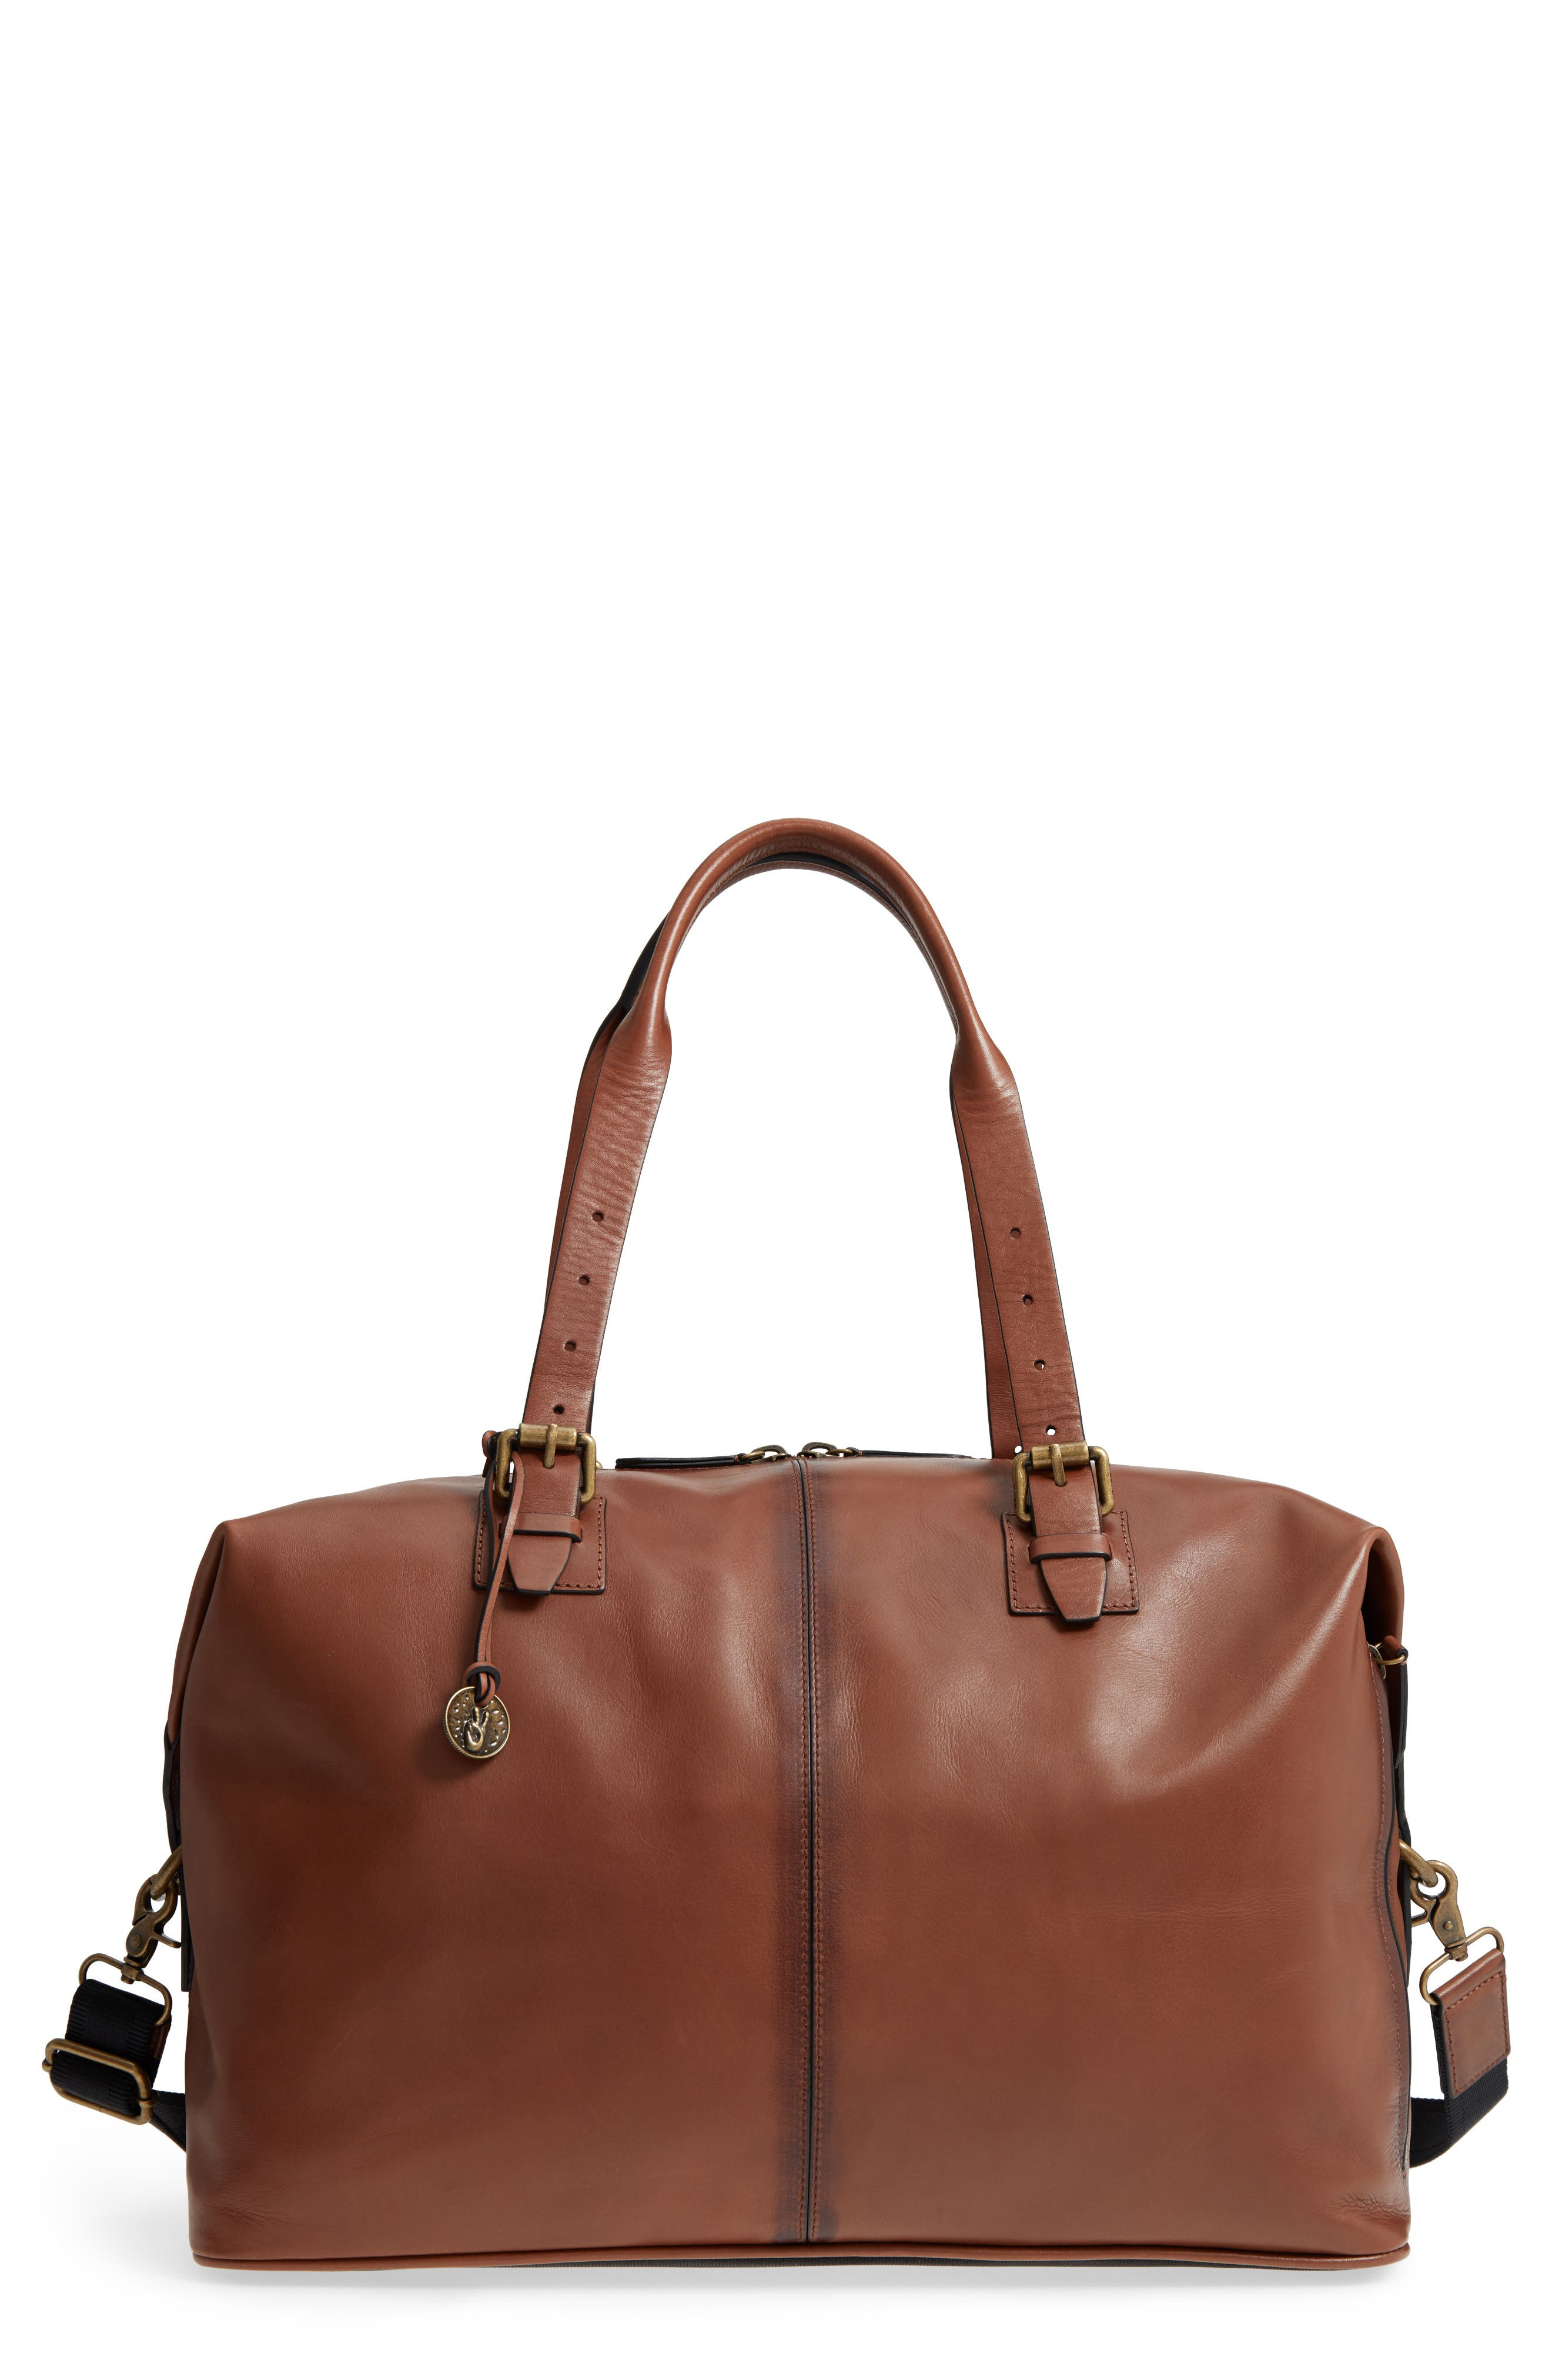 Heritage Leather Duffel Bag,                         Main,                         color, 200